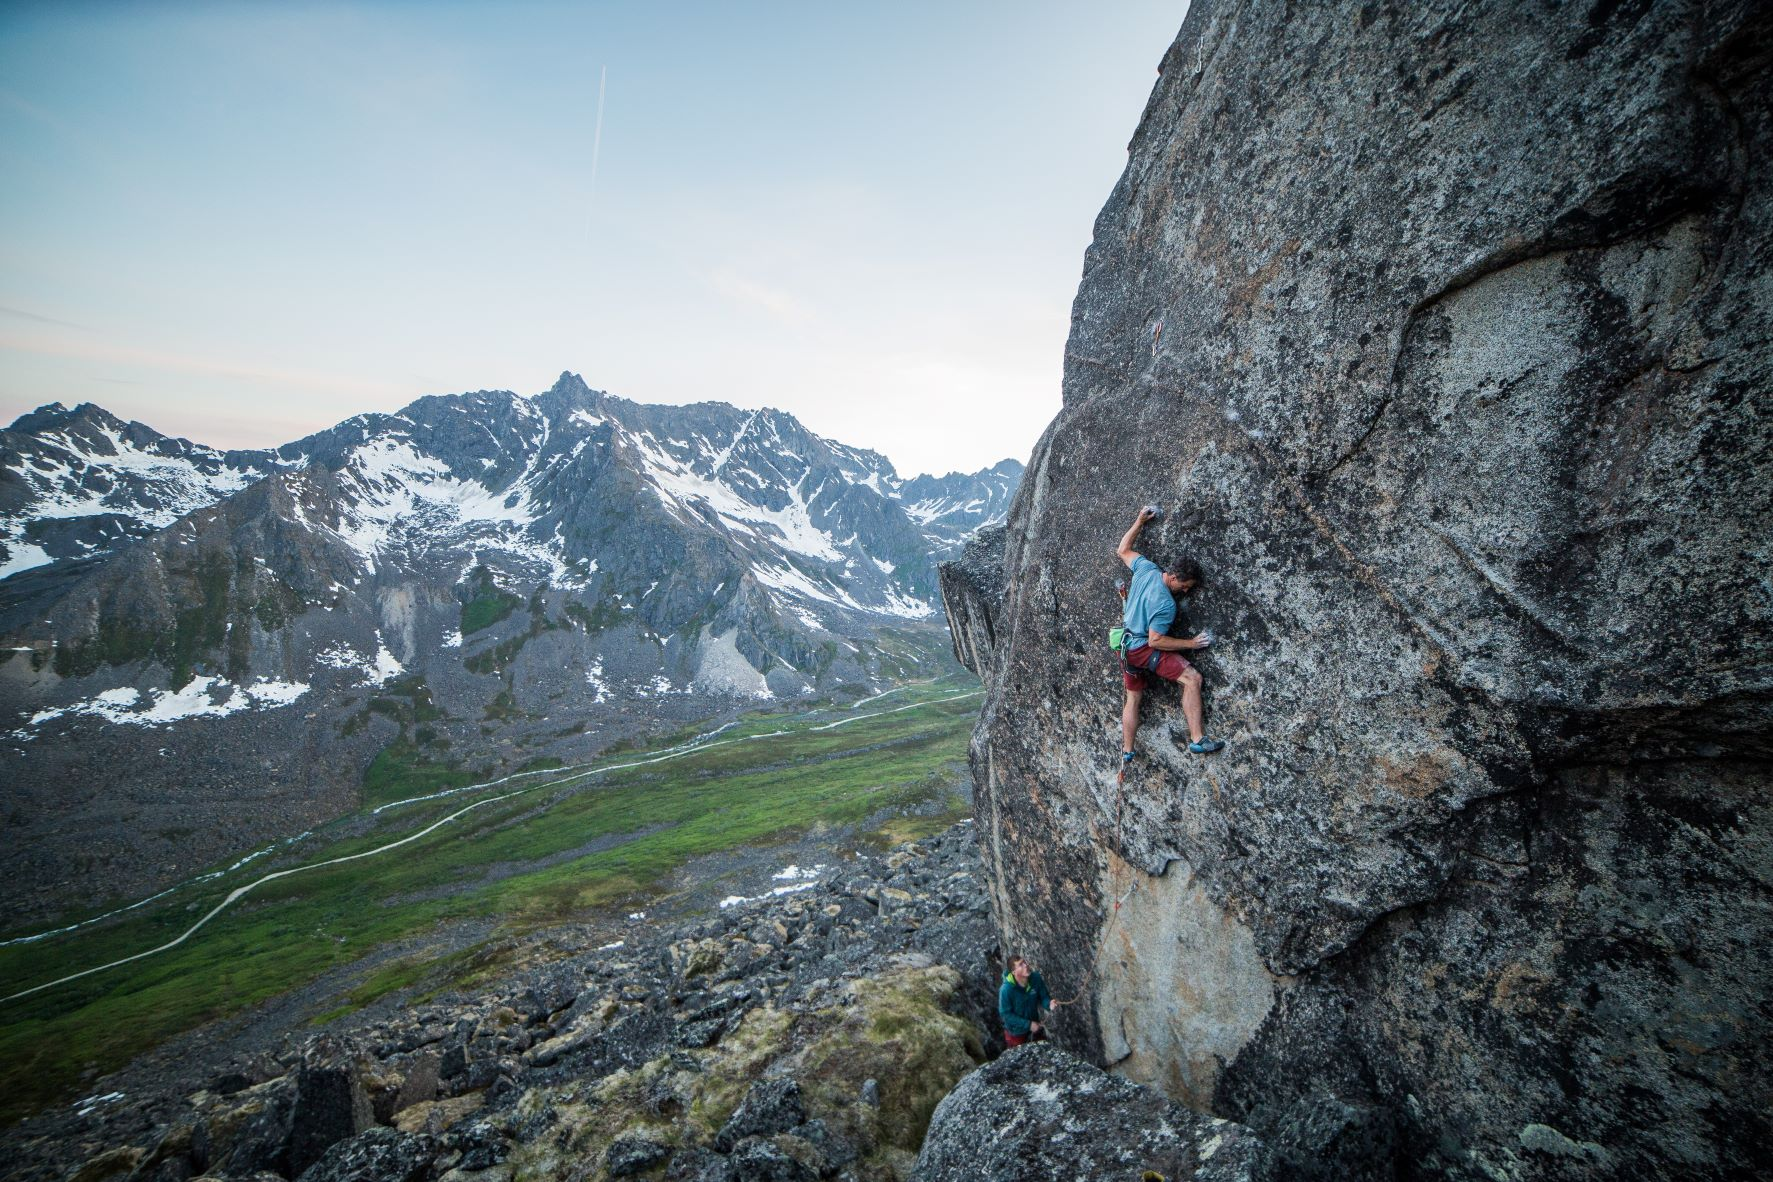 A person rock climbing in Hatcher Pass, Alaska in the foreground, with mountains in the backgroundth snow